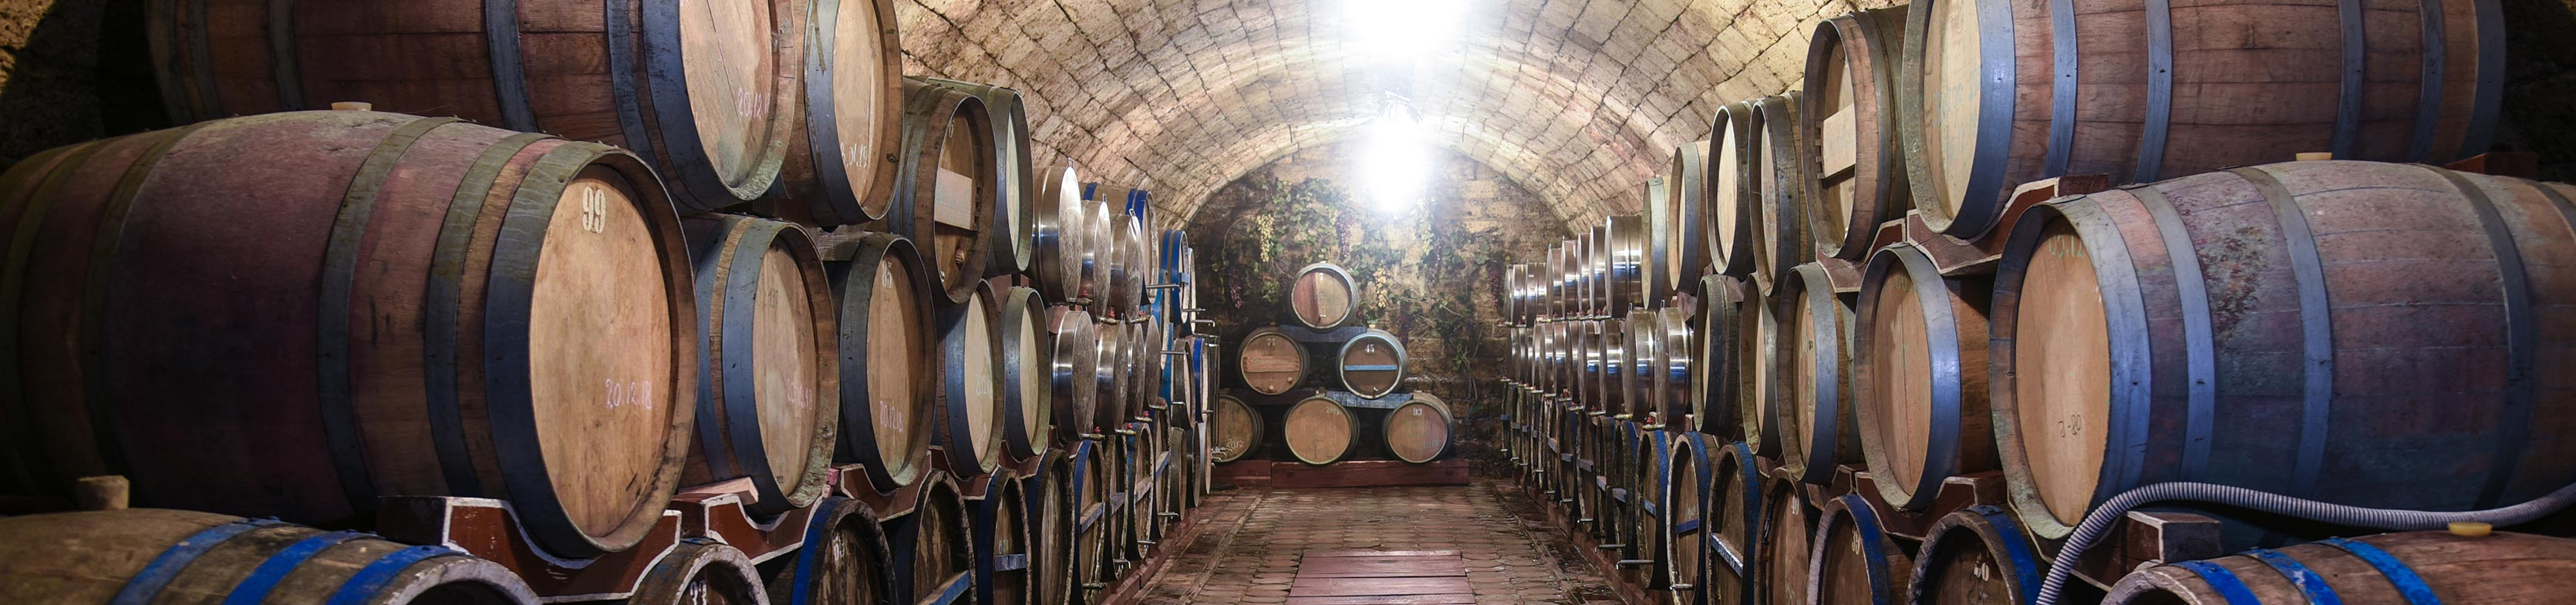 Drainage for Wineries/Distilleries